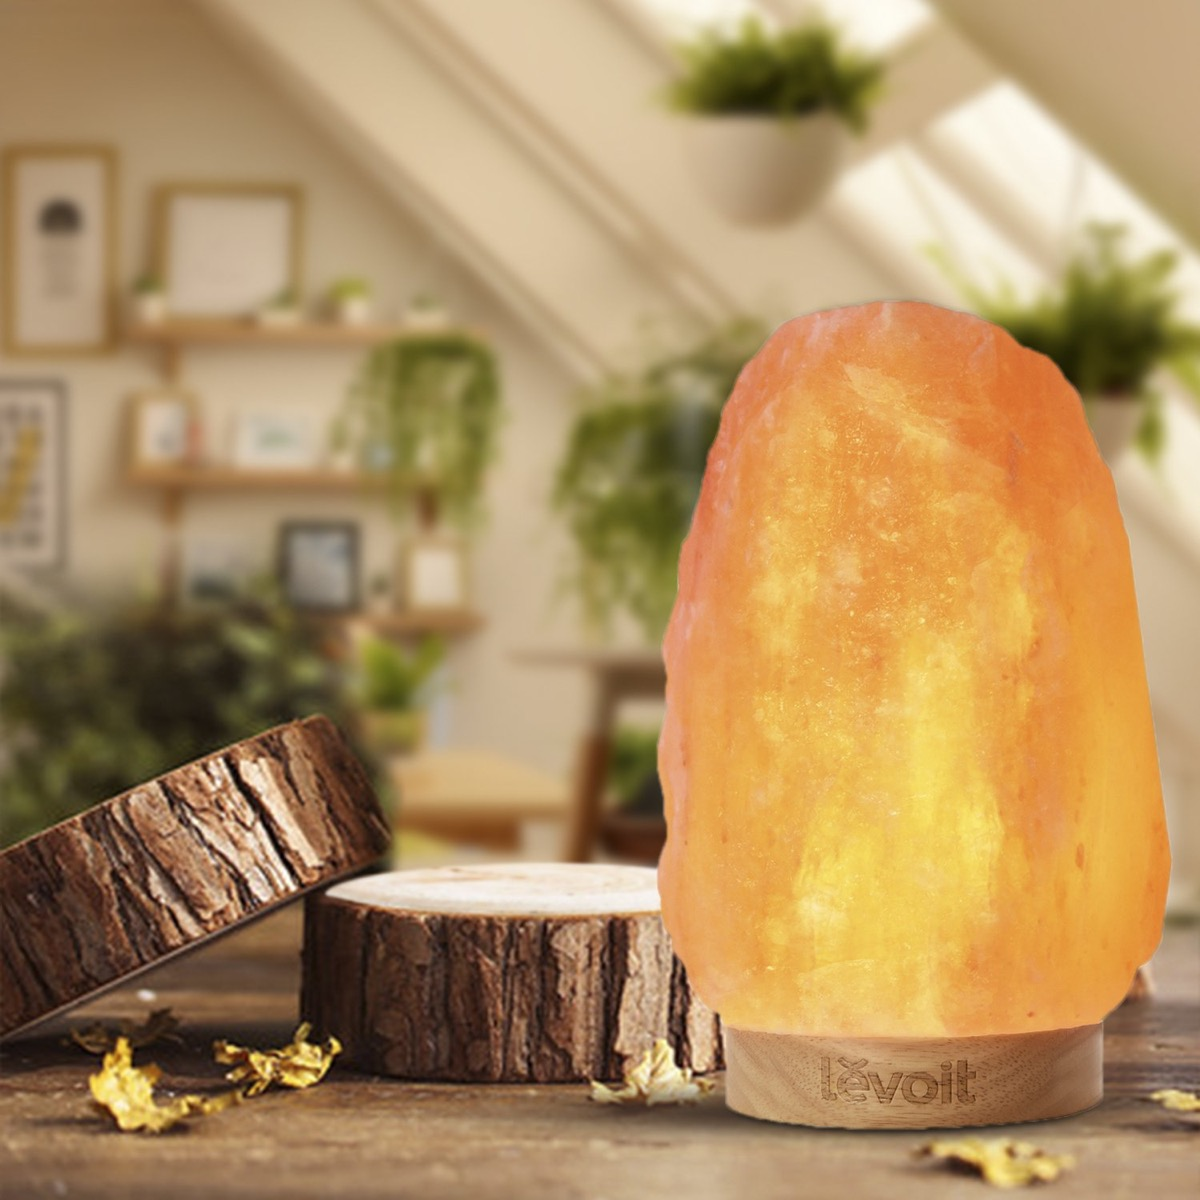 salt lamp on wooden table next to log slices